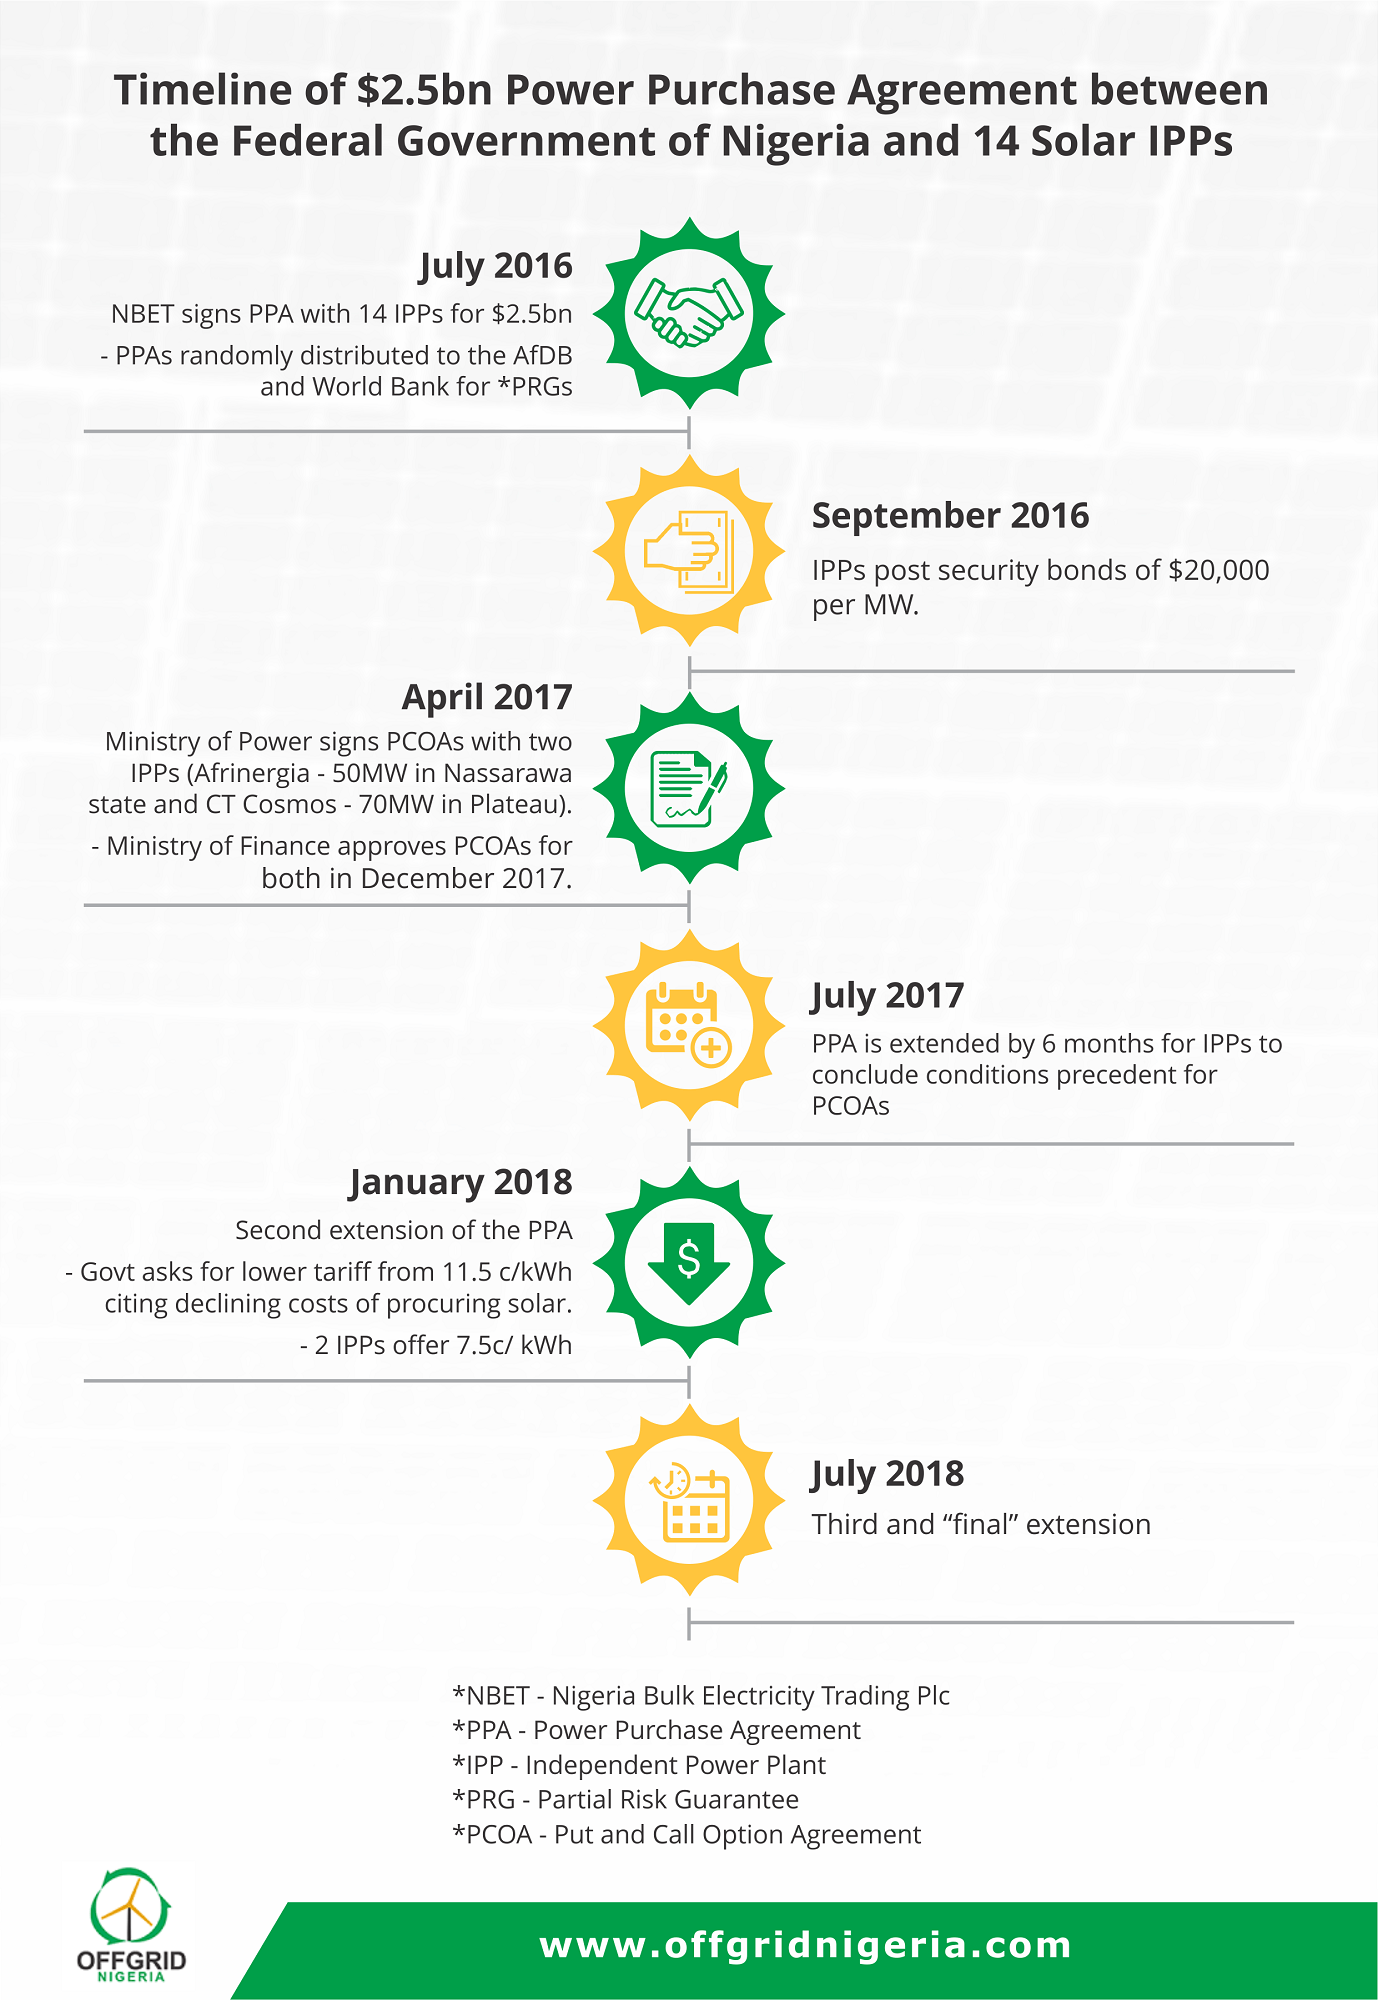 Timeline of PPA with 14 solar IPPs